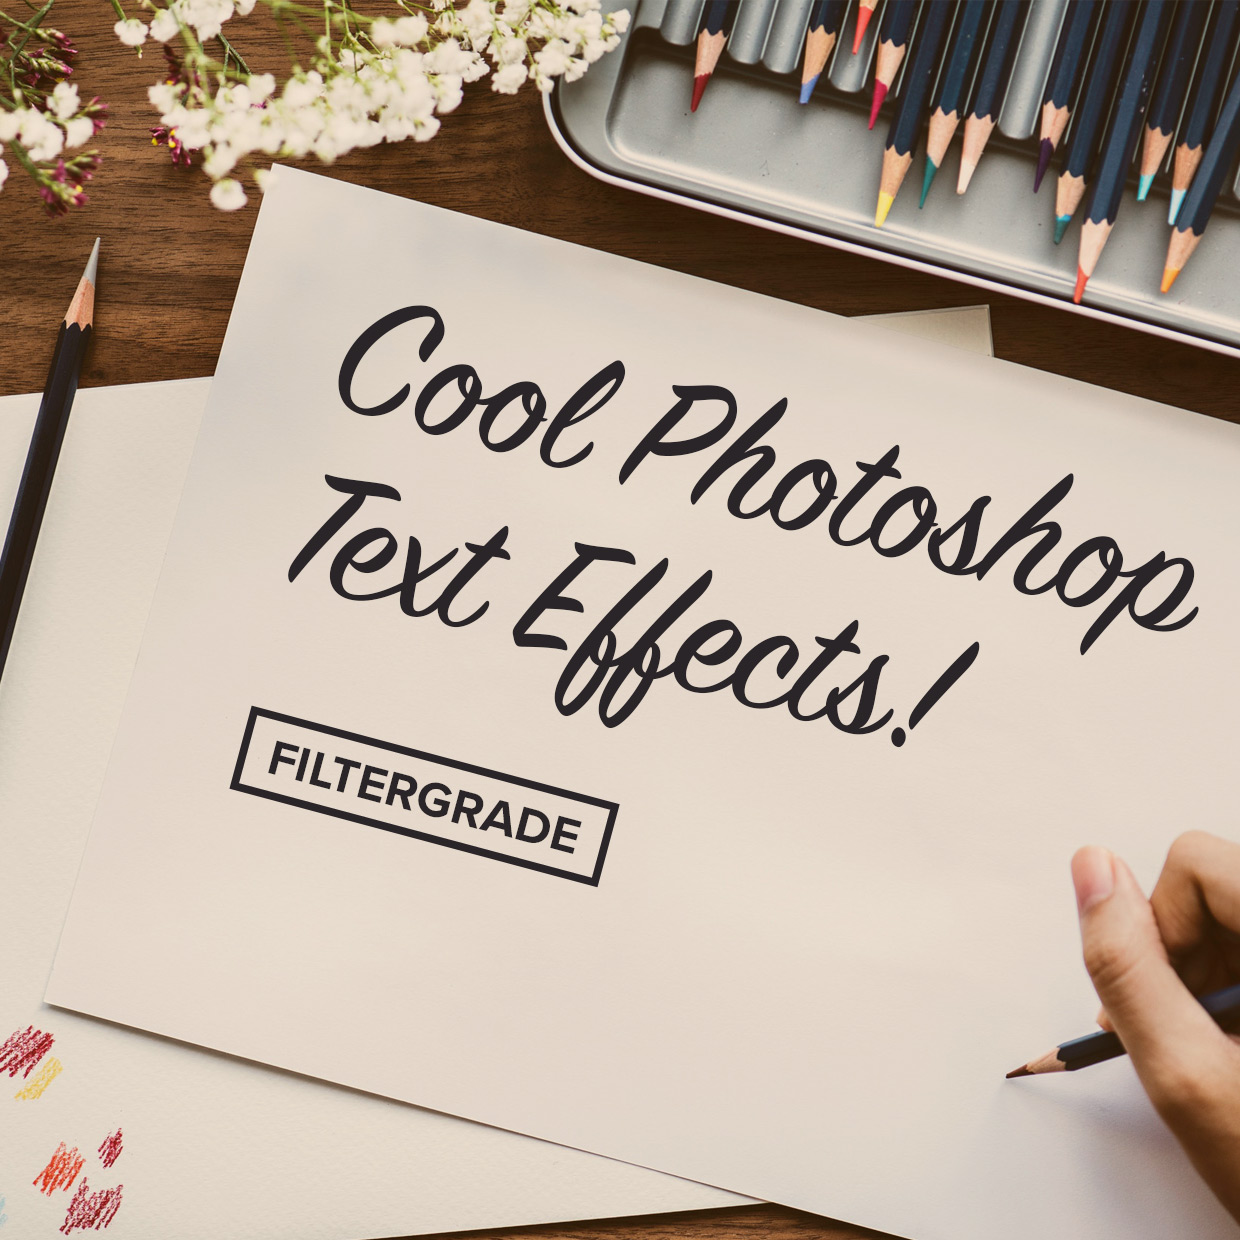 15 Cool Photoshop Text Effect Tutorials - FilterGrade